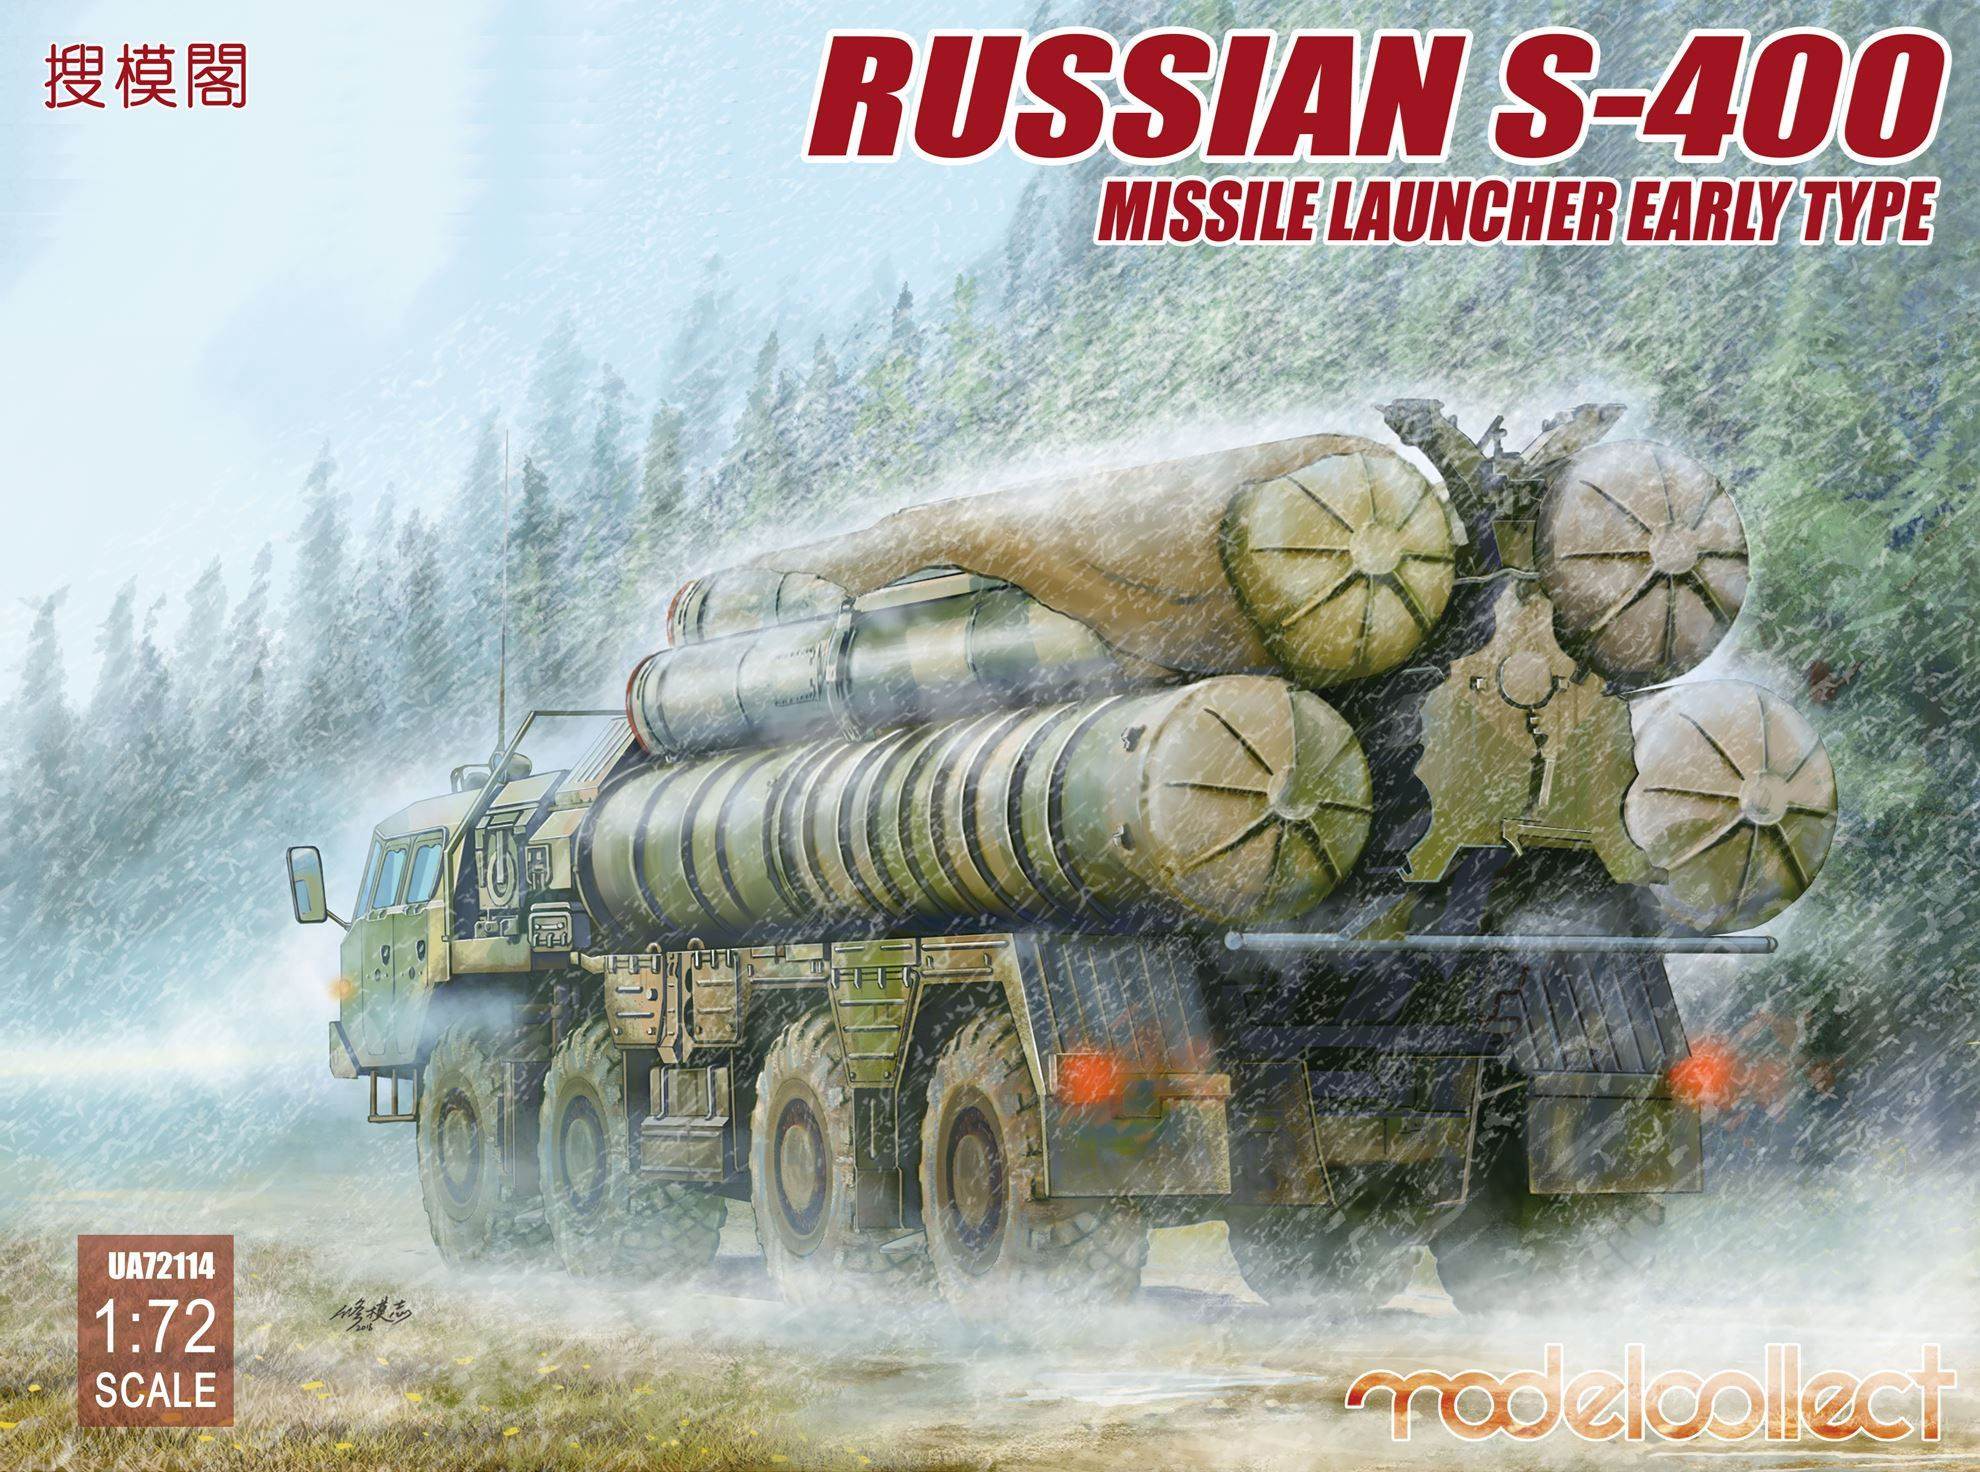 Russian S-400 Missile Launcher - Early type